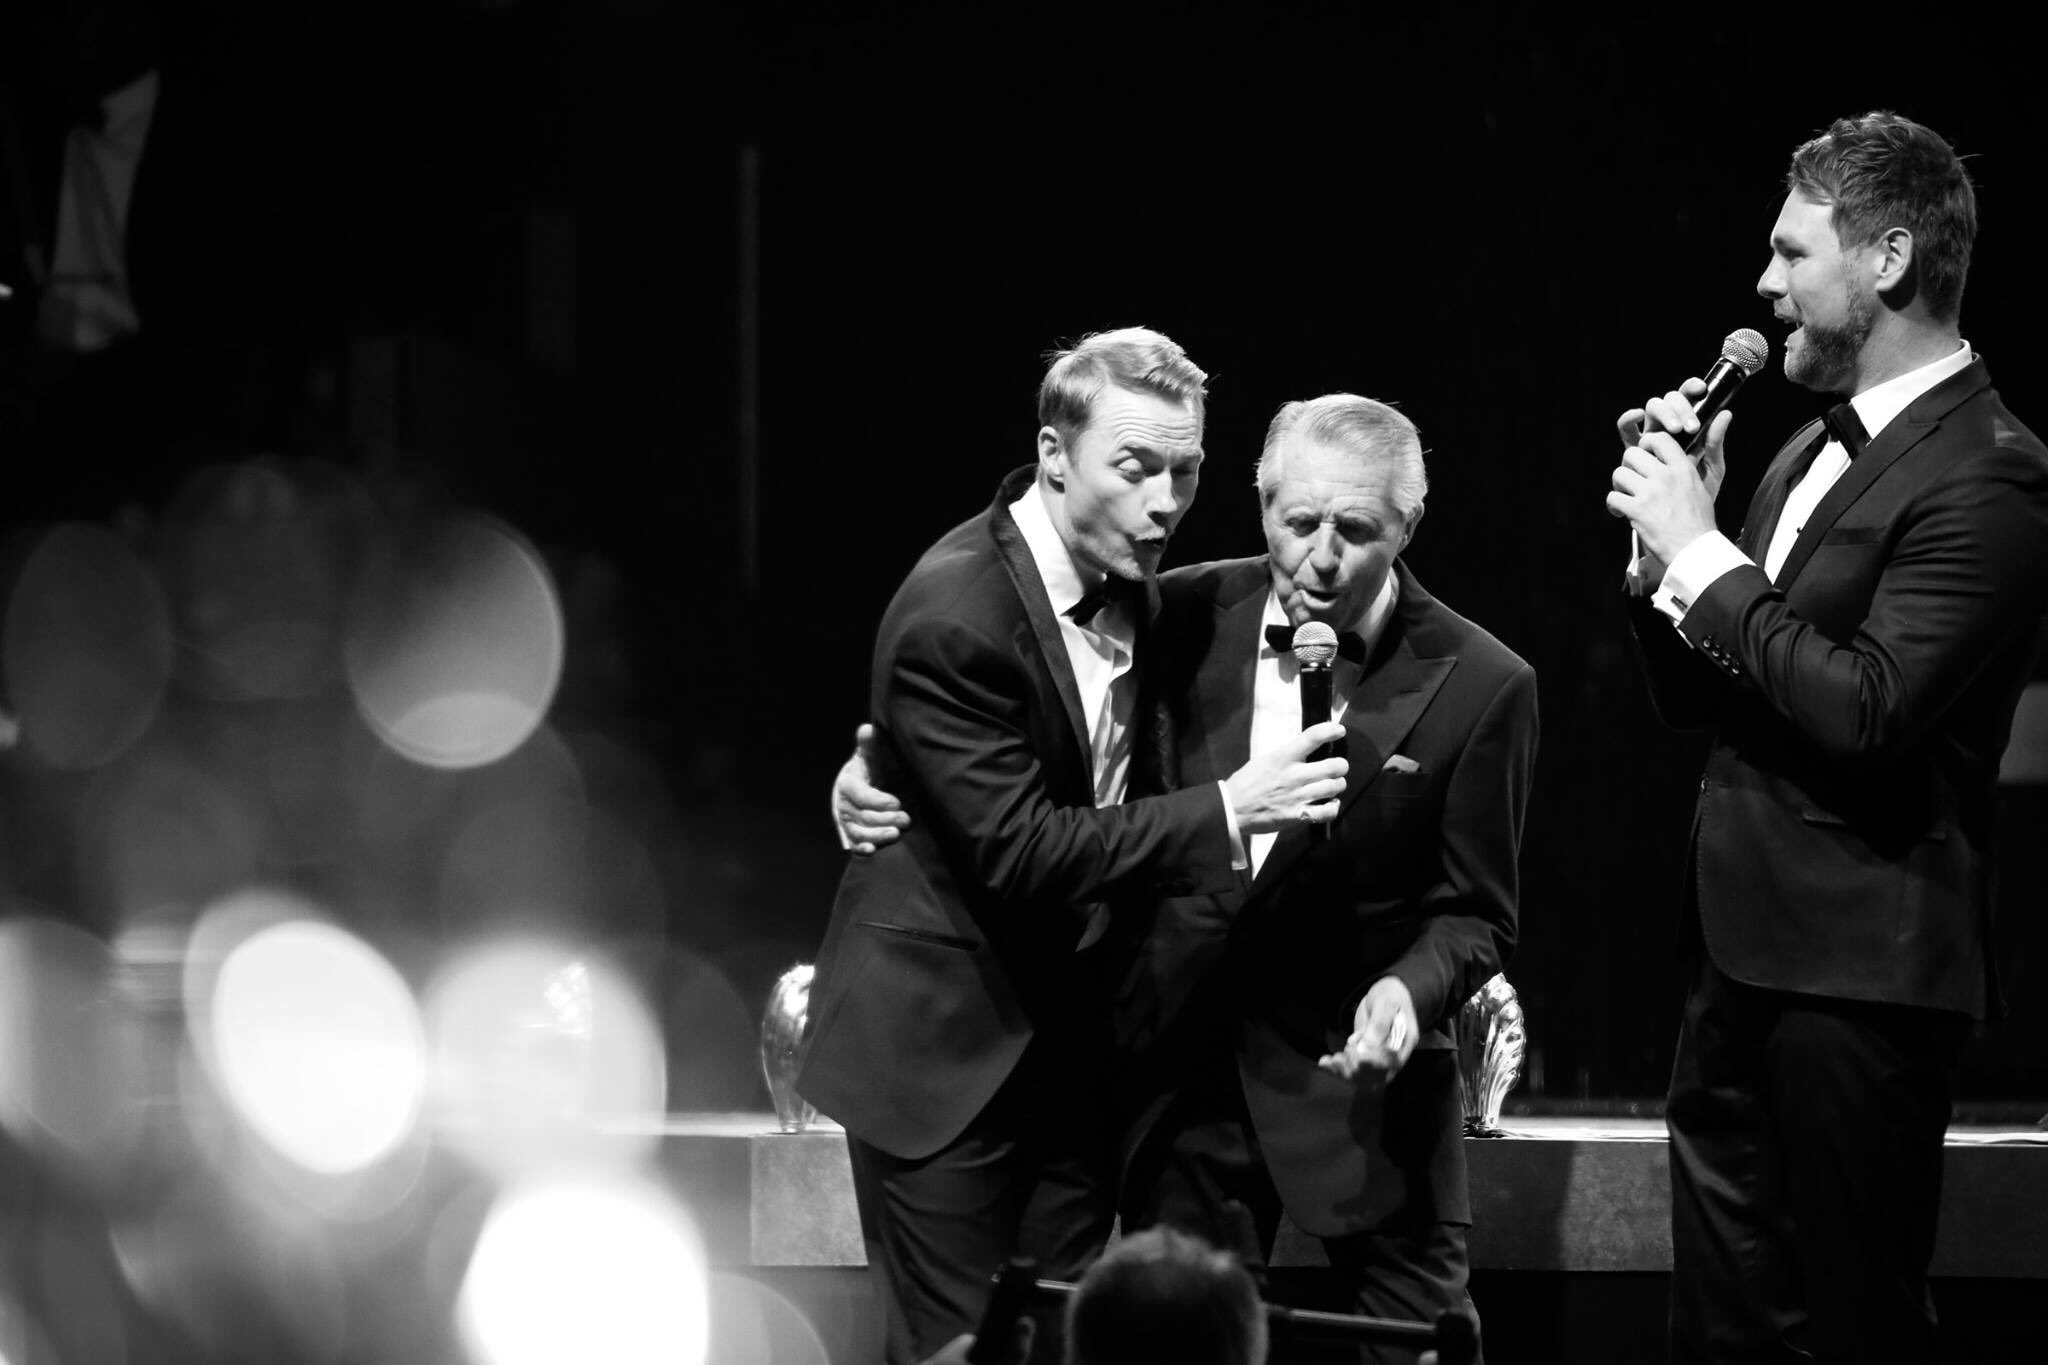 RT @GPInvitational: Gary Player was live with Ireland's finest #GolfandGiving https://t.co/H5ByZIZnl9